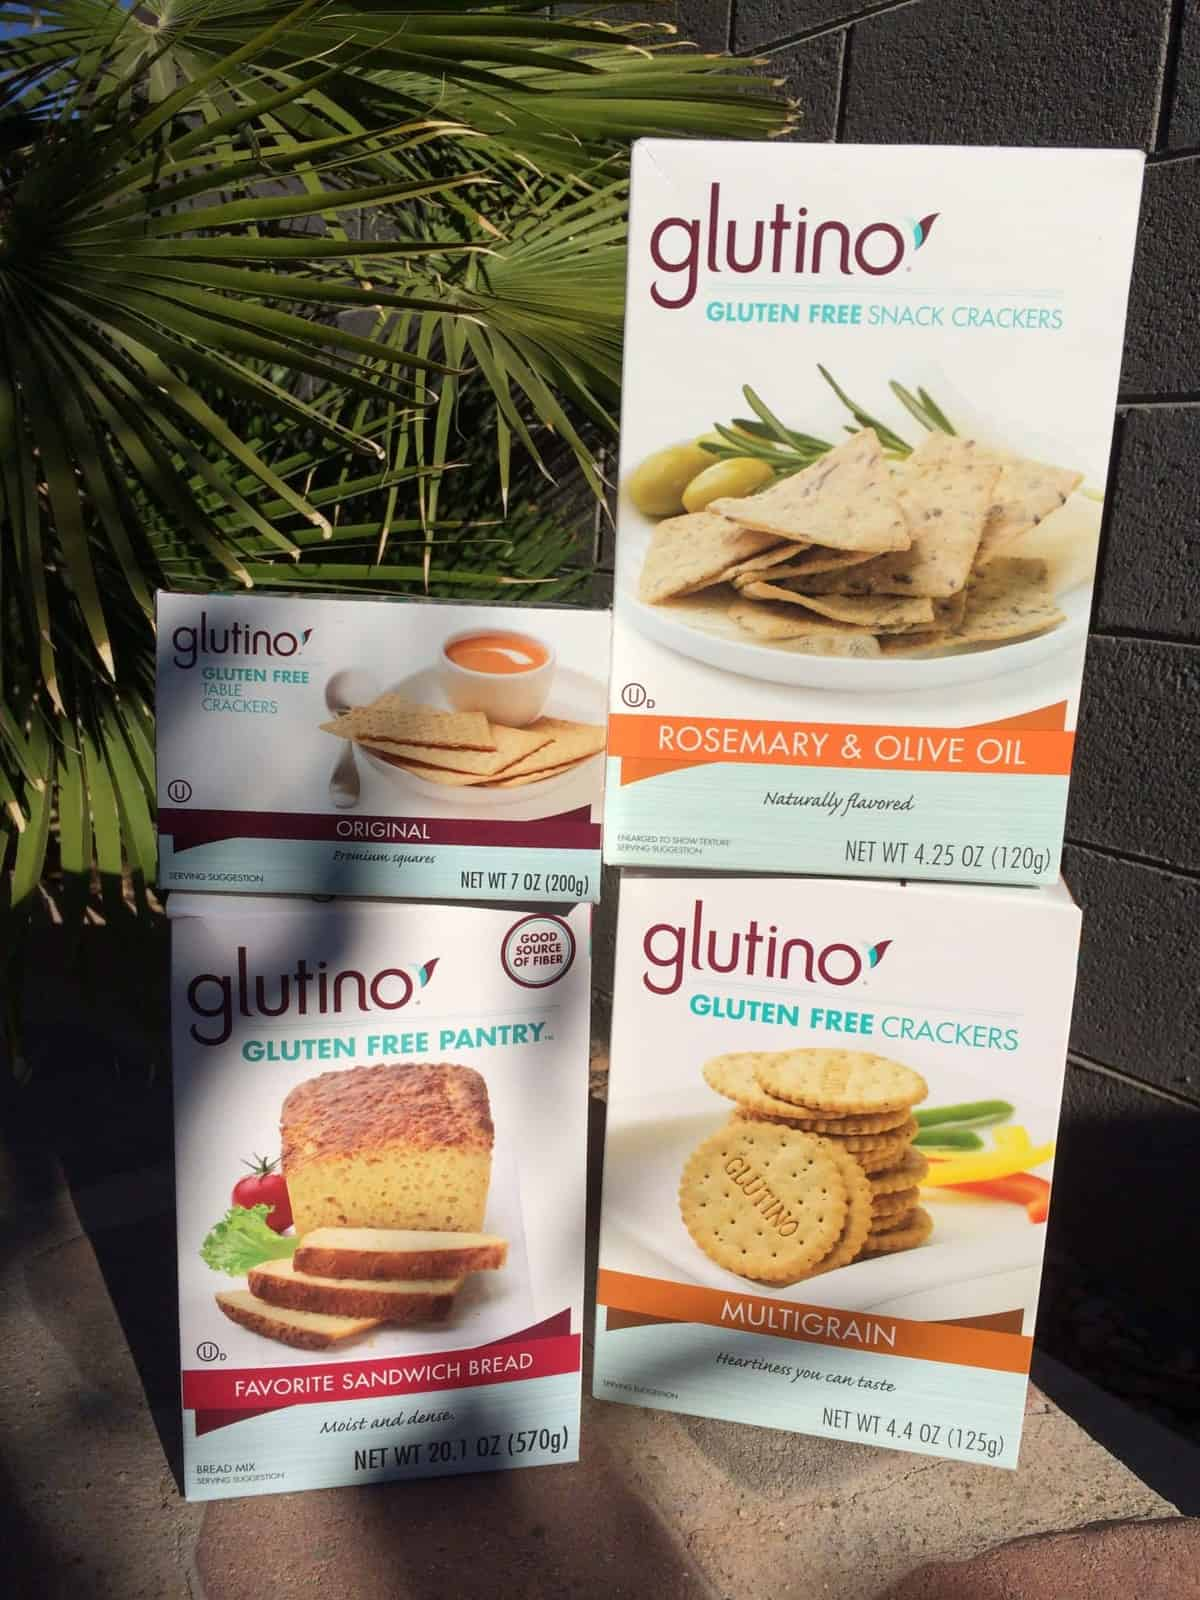 Glutino Gluten-Free Crackers Galore Feature & Giveaway!! PLUS some BIG news!